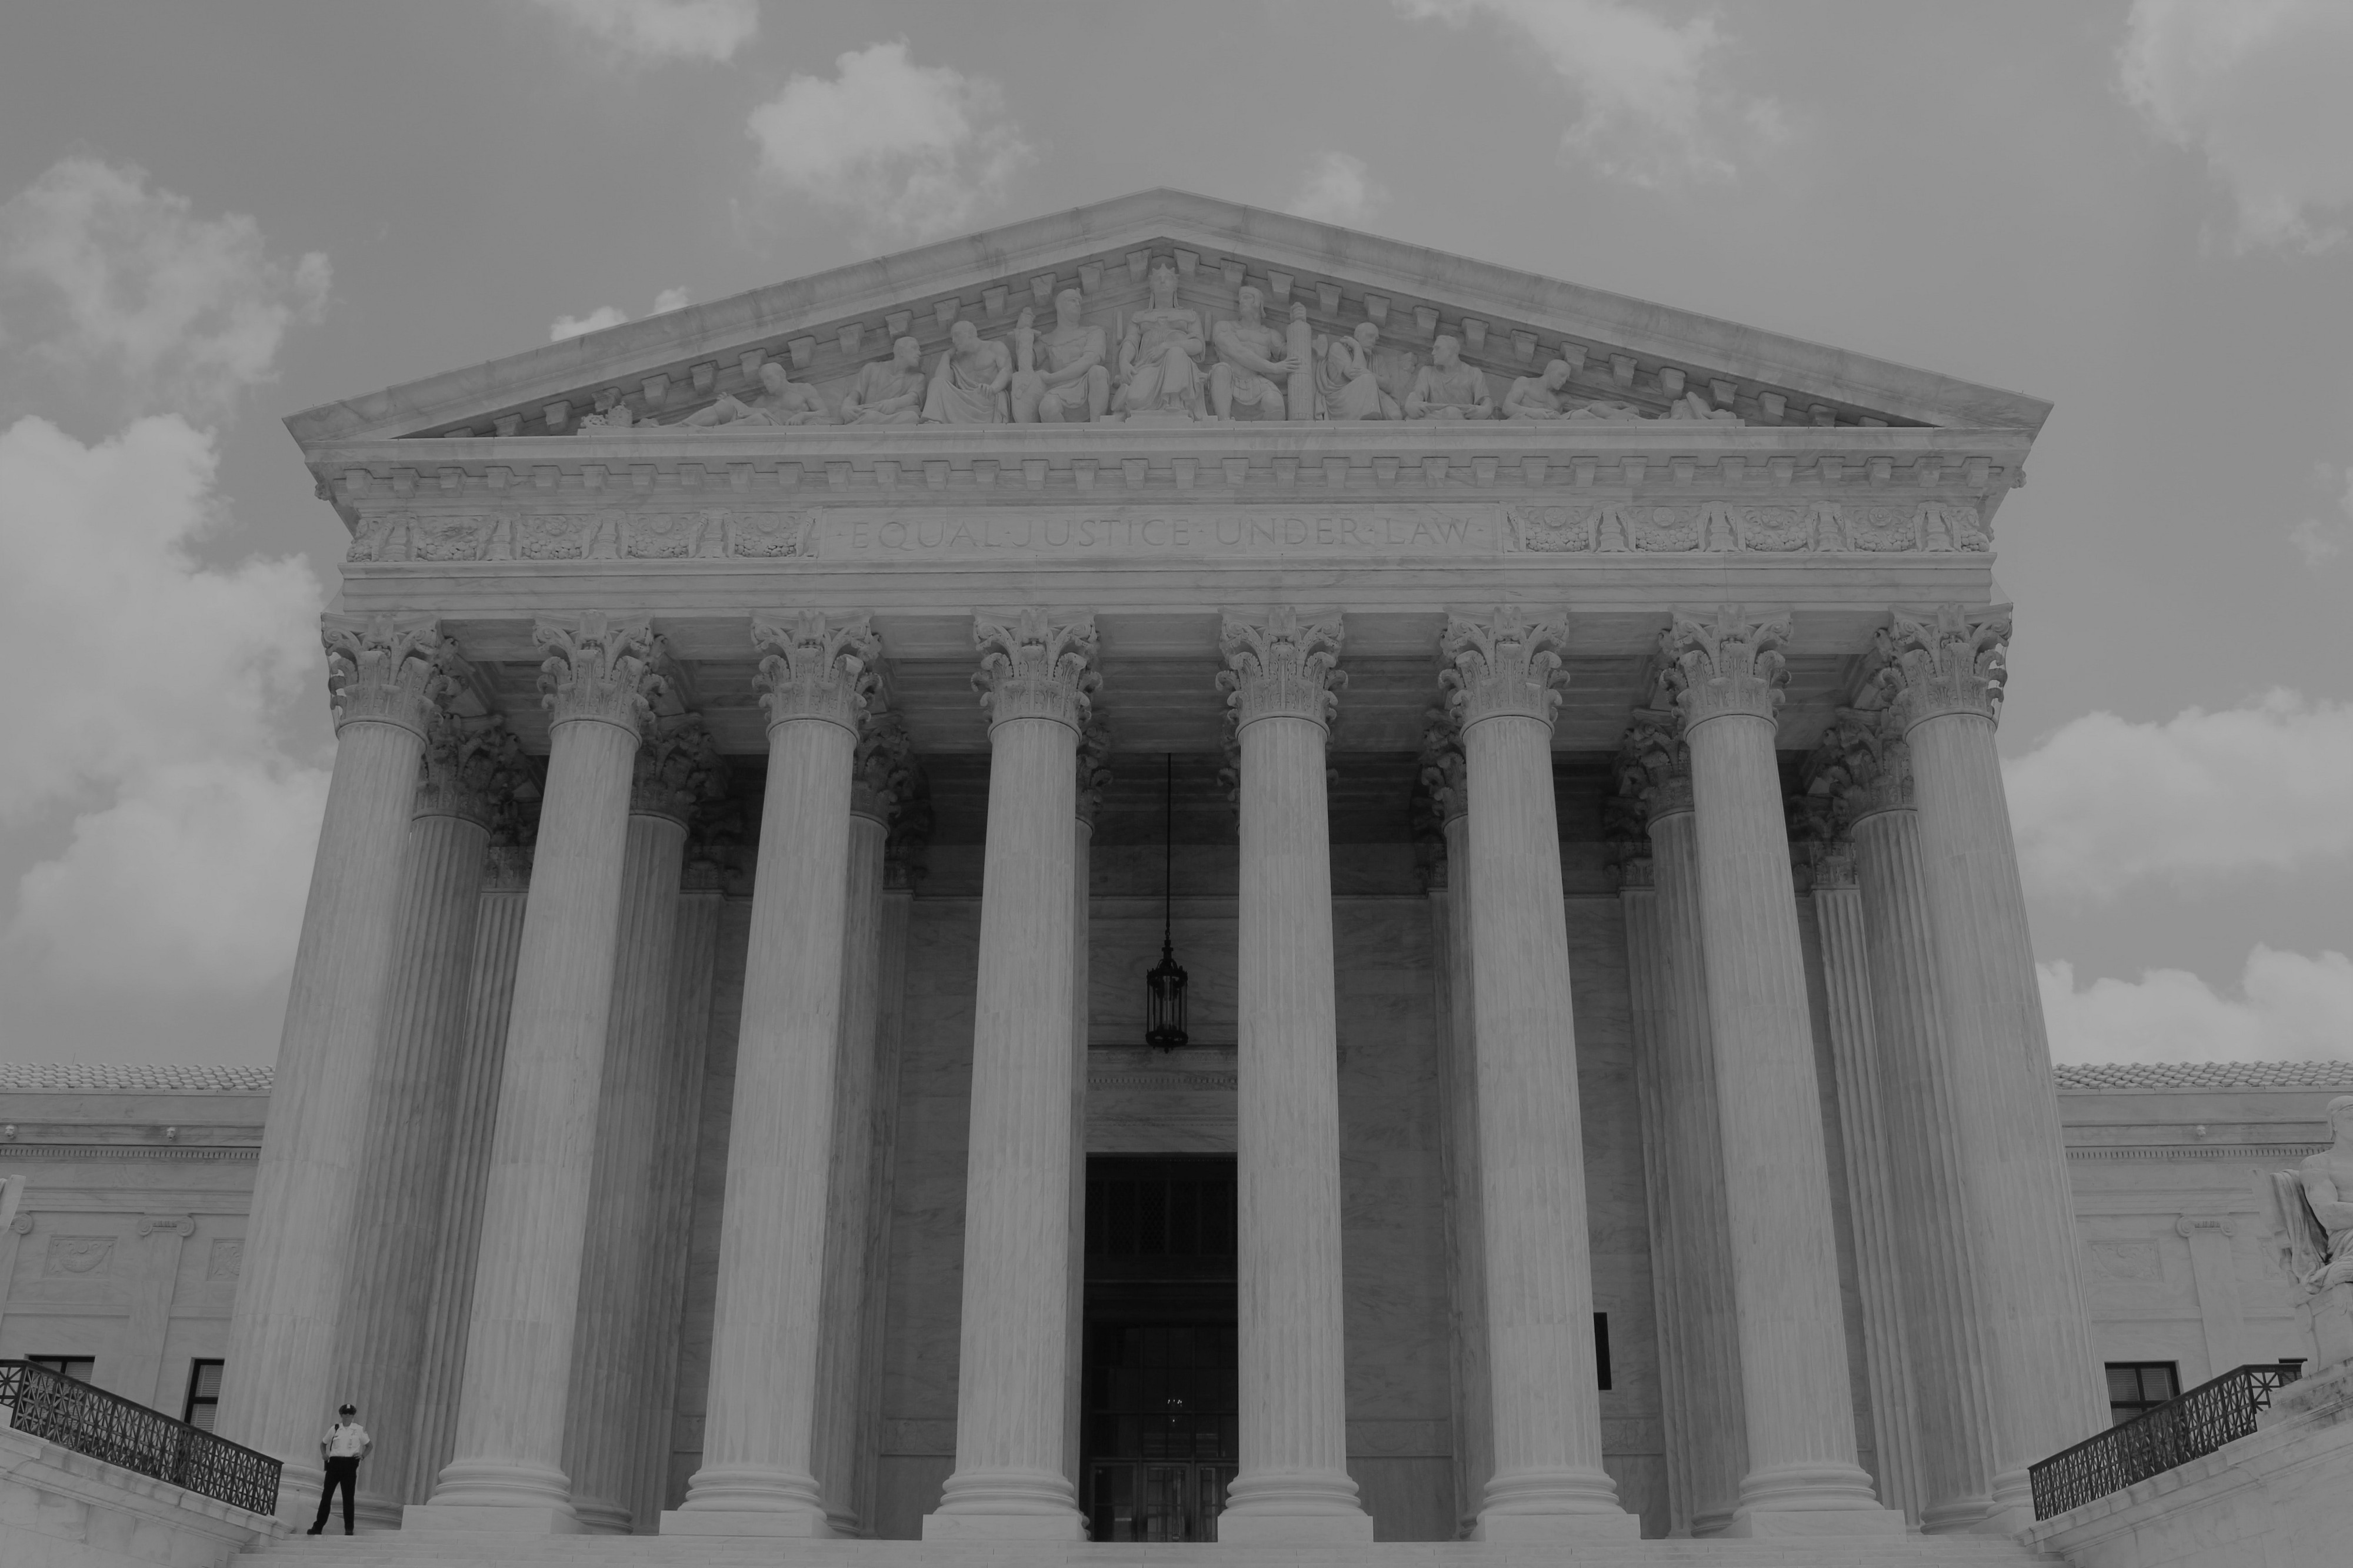 Image of the United States Supreme Court.